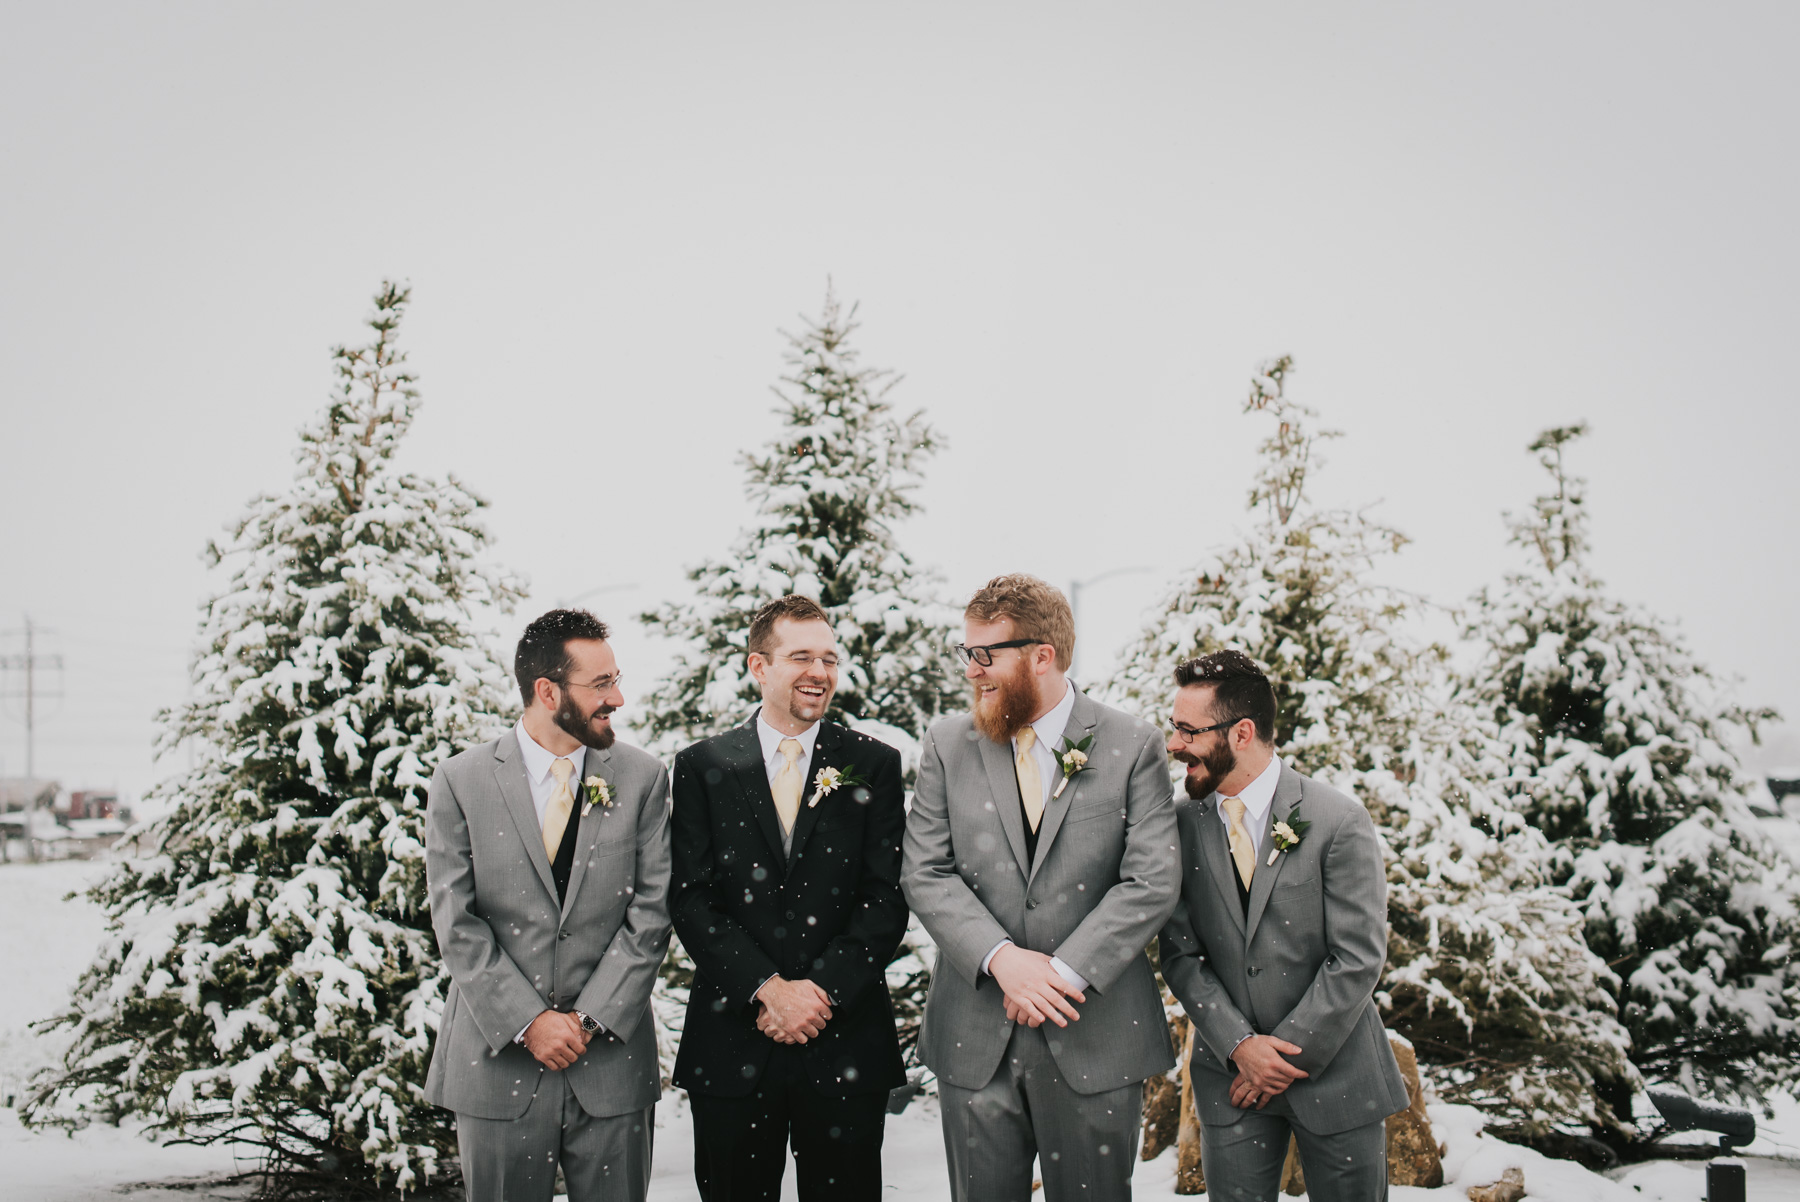 Jordan and his groomsmen, braving the snowy cold outside of their venue, the Windsor Estate Event Center, in Windsor, Colorado, right outside of Fort Collins. There was so much snow!